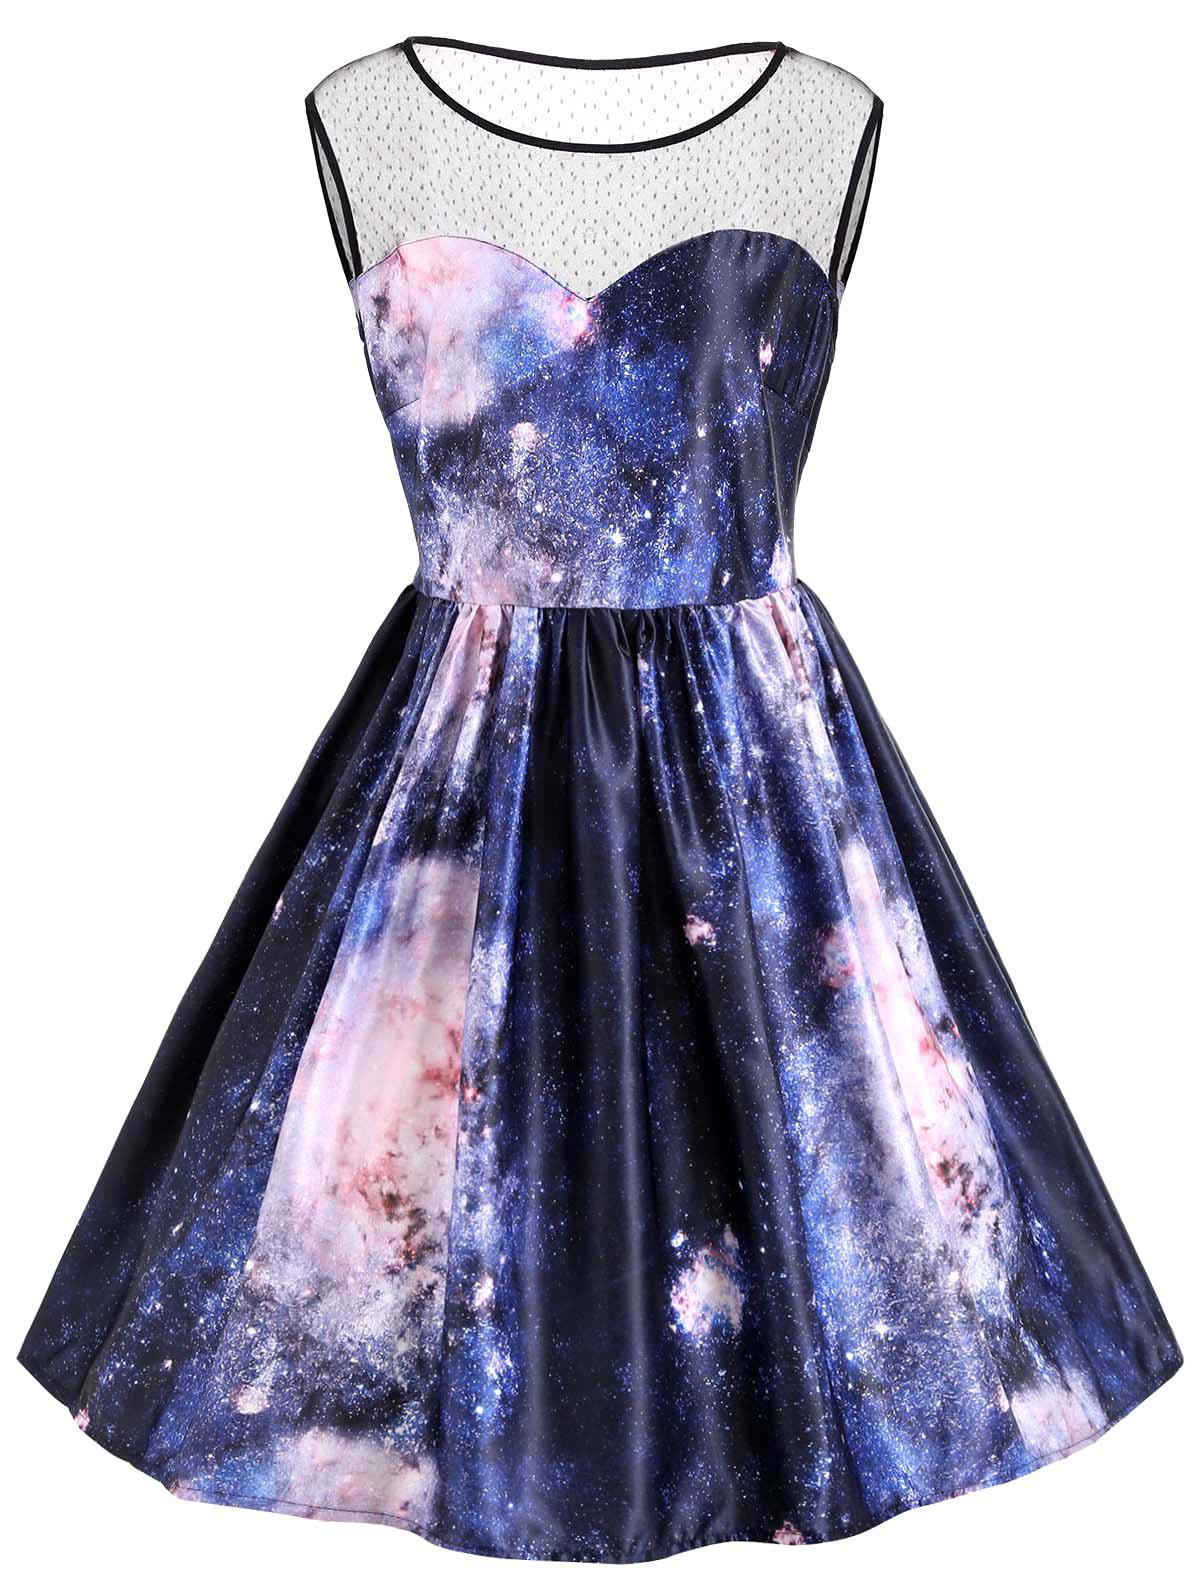 Galaxy Print Plus Size Sleeveless Retro DressWOMEN<br><br>Size: 2XL; Color: MIDNIGHT; Style: Vintage; Material: Polyester; Silhouette: A-Line; Dresses Length: Knee-Length; Neckline: Round Collar; Sleeve Length: Sleeveless; Waist: High Waisted; Embellishment: Panel; Pattern Type: Galaxy,Print; With Belt: No; Season: Fall,Spring,Summer,Winter; Weight: 0.3700kg; Package Contents: 1 x Dress;